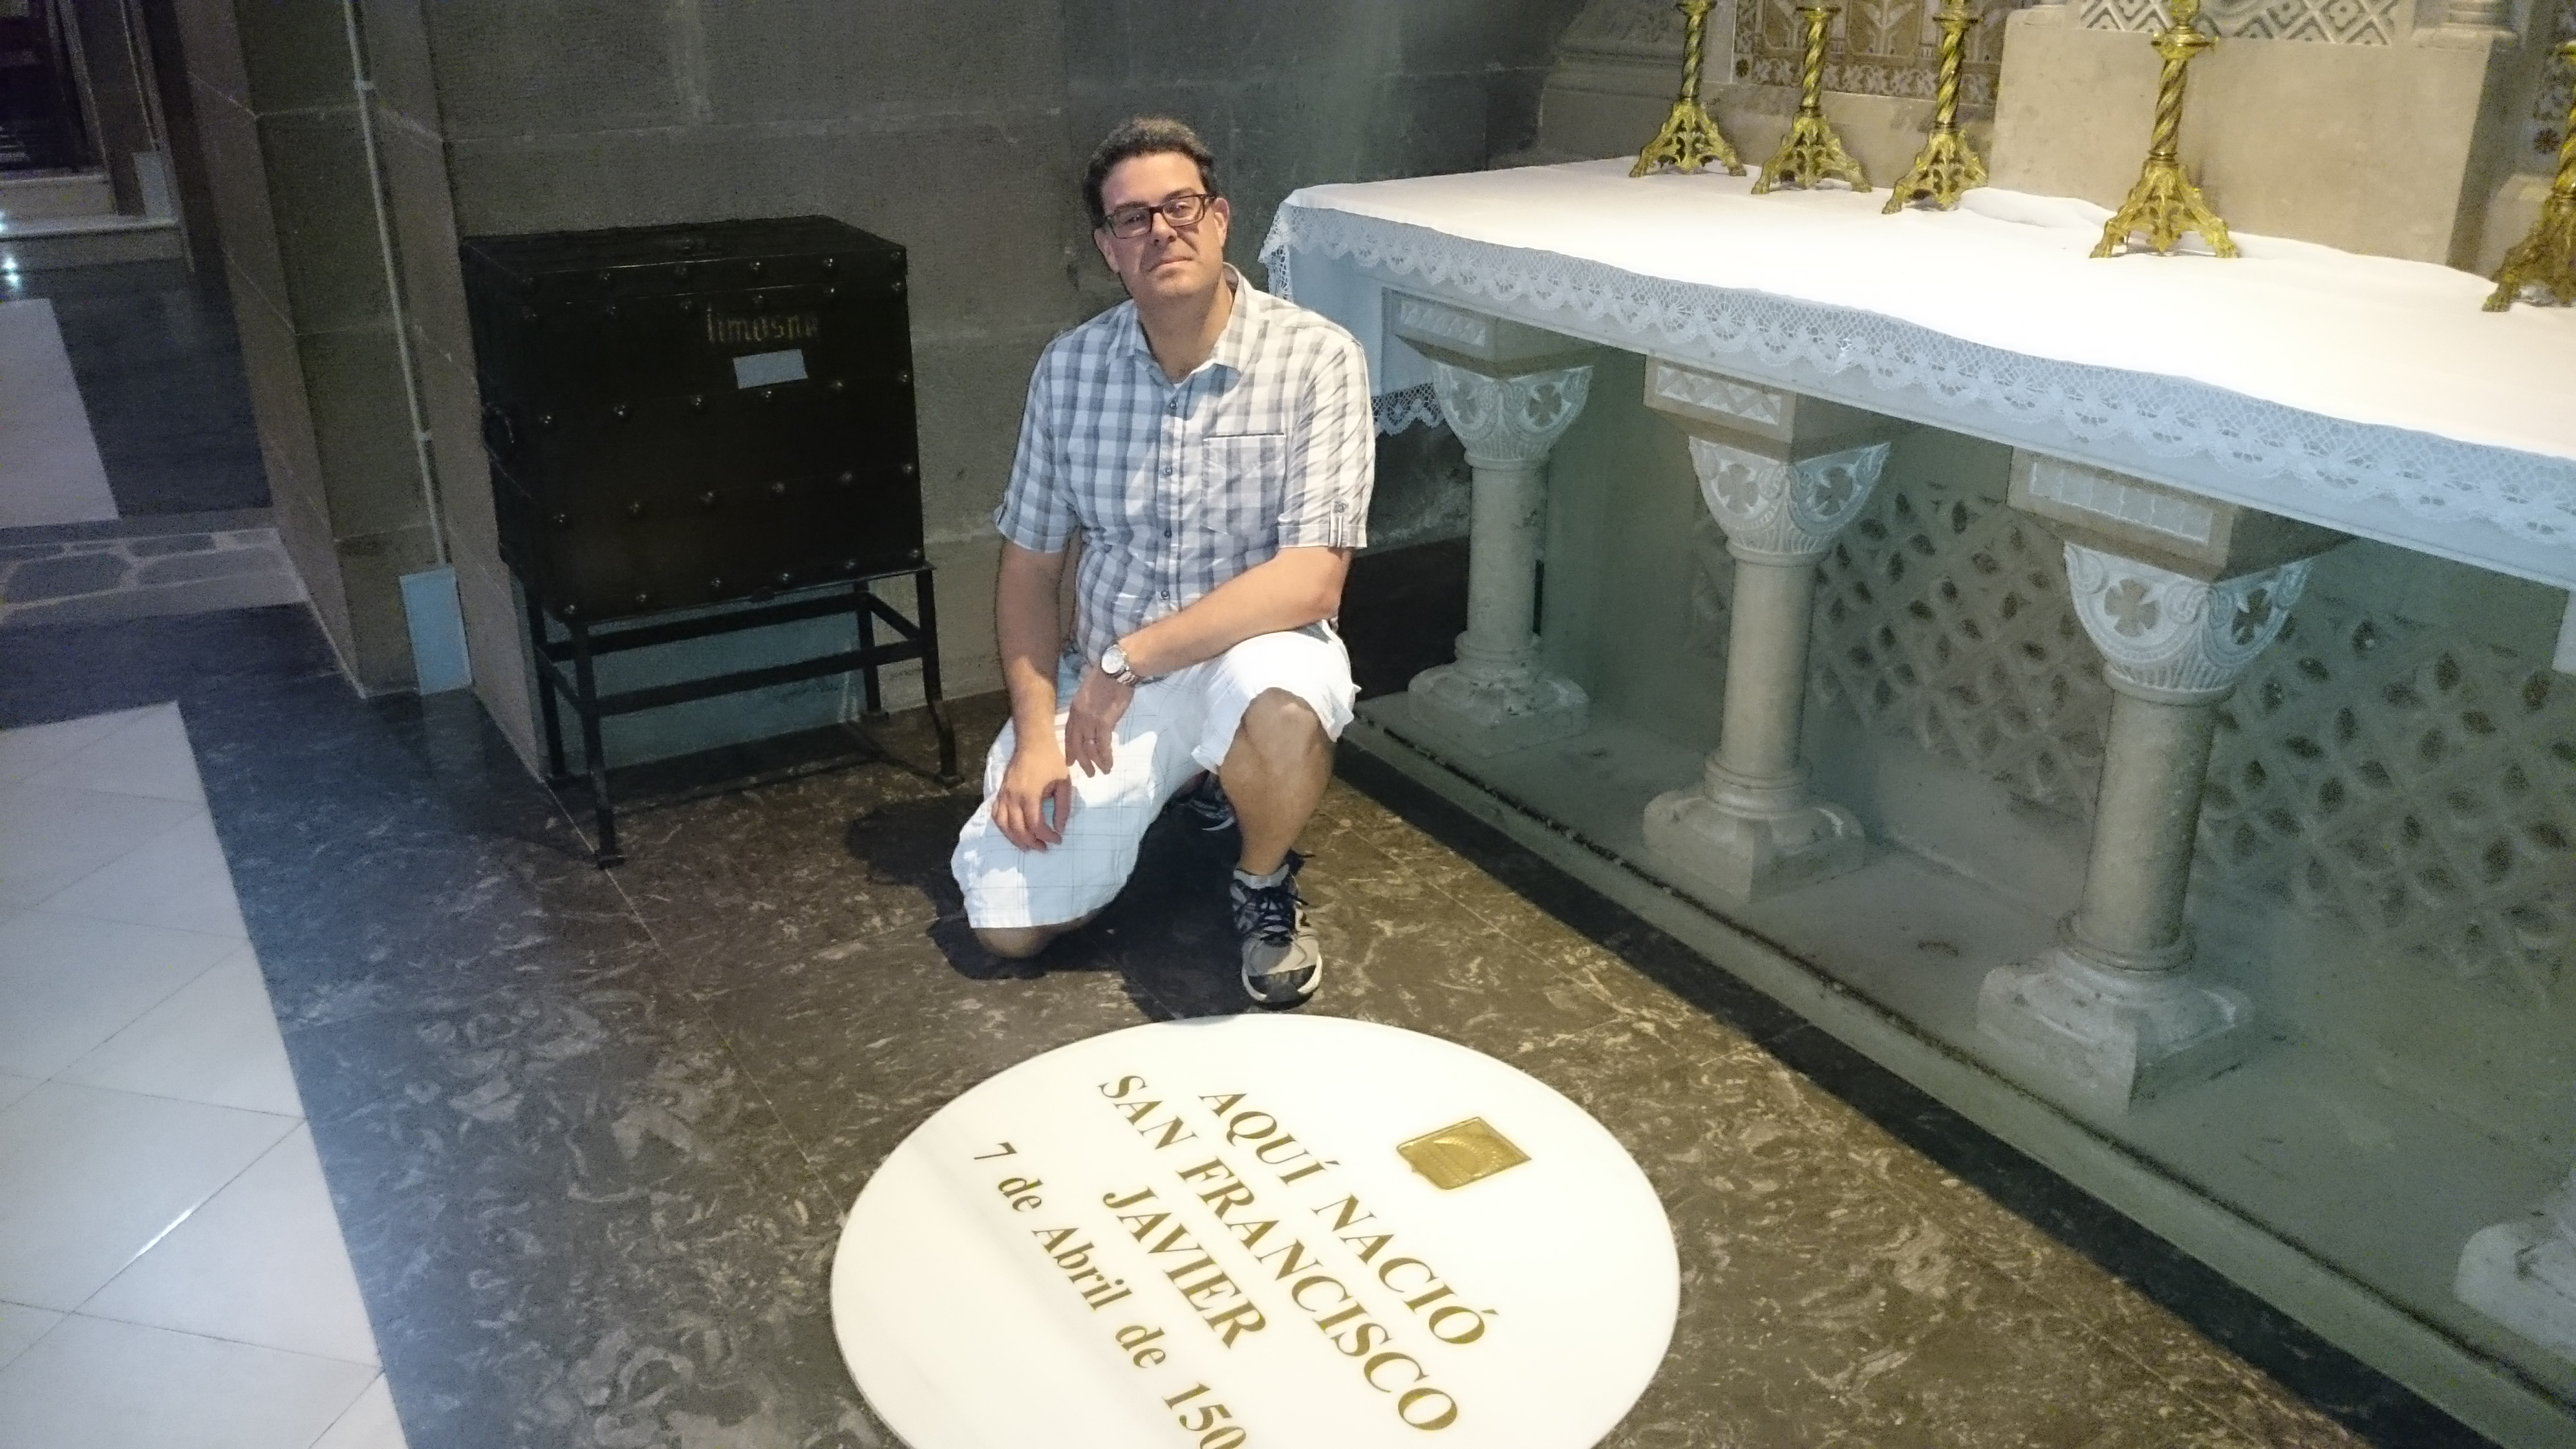 John Sebastian, vice president for Mission and Ministry, kneels next to the birthplace of St. Francis Xavier. Sebastian visited important sites from Ignatius' life this summer. Photo credit: Courtesy of John Sebastian